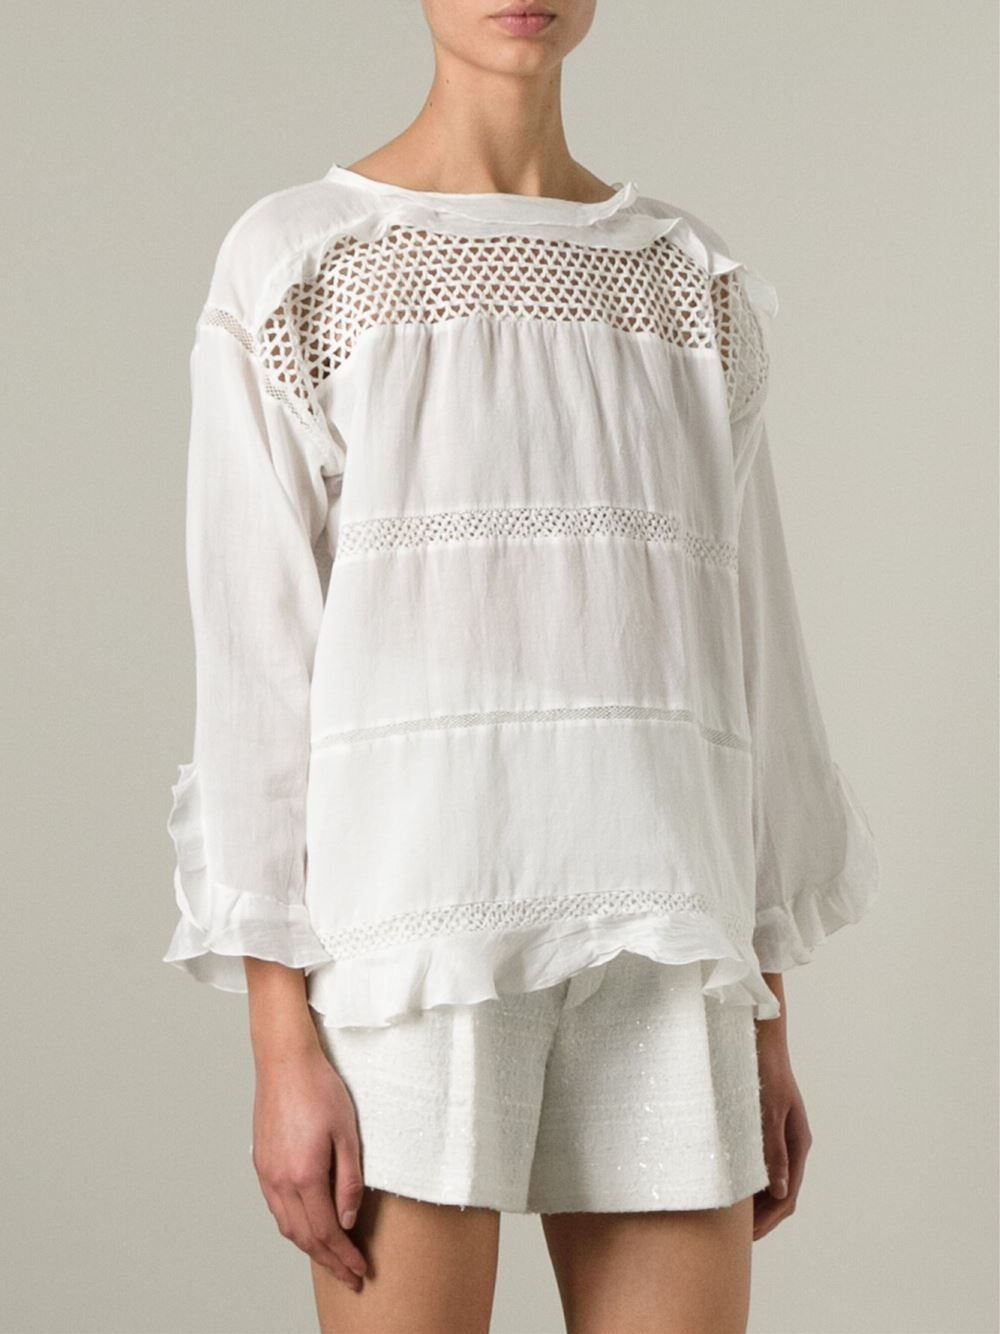 09090c36344d4 Isabel Marant Blouse - Image Of Blouse and Pocket